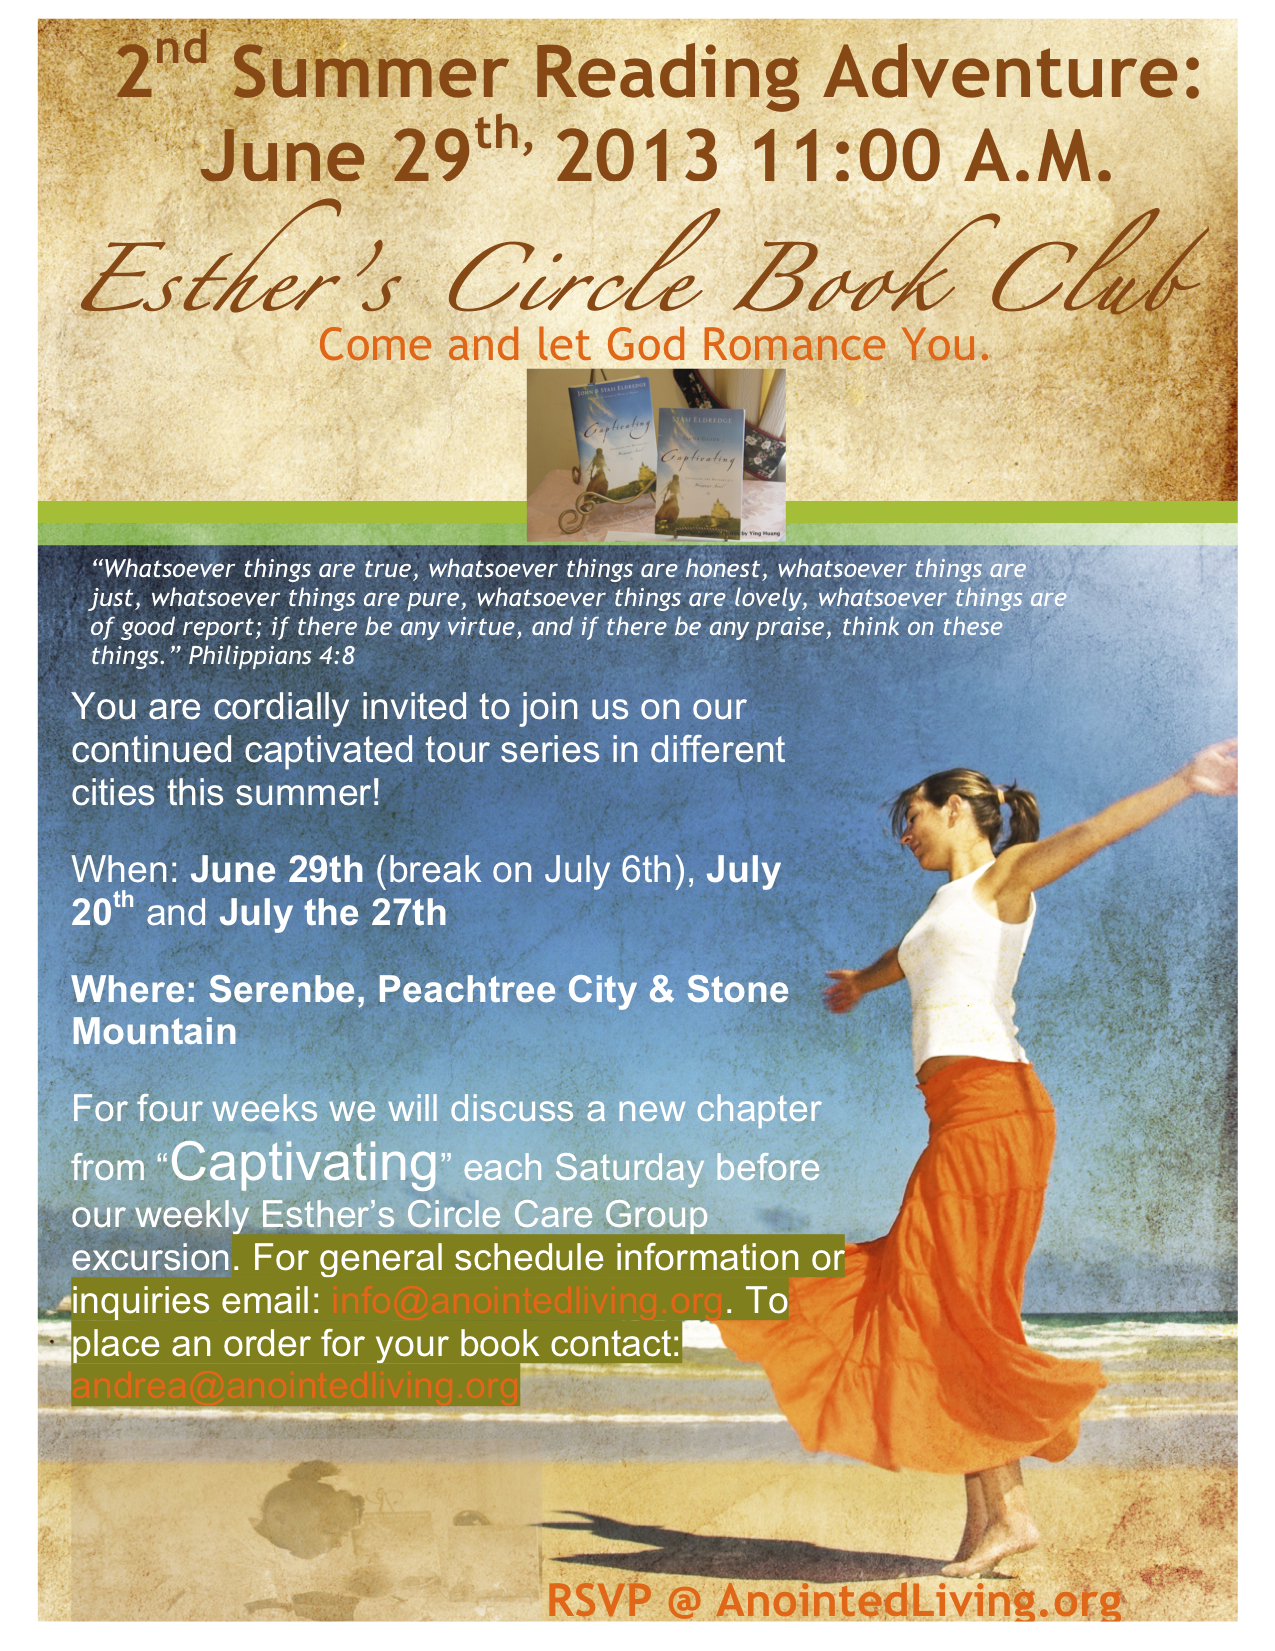 2013 Summer Reading Tour Program with Esther's Circle